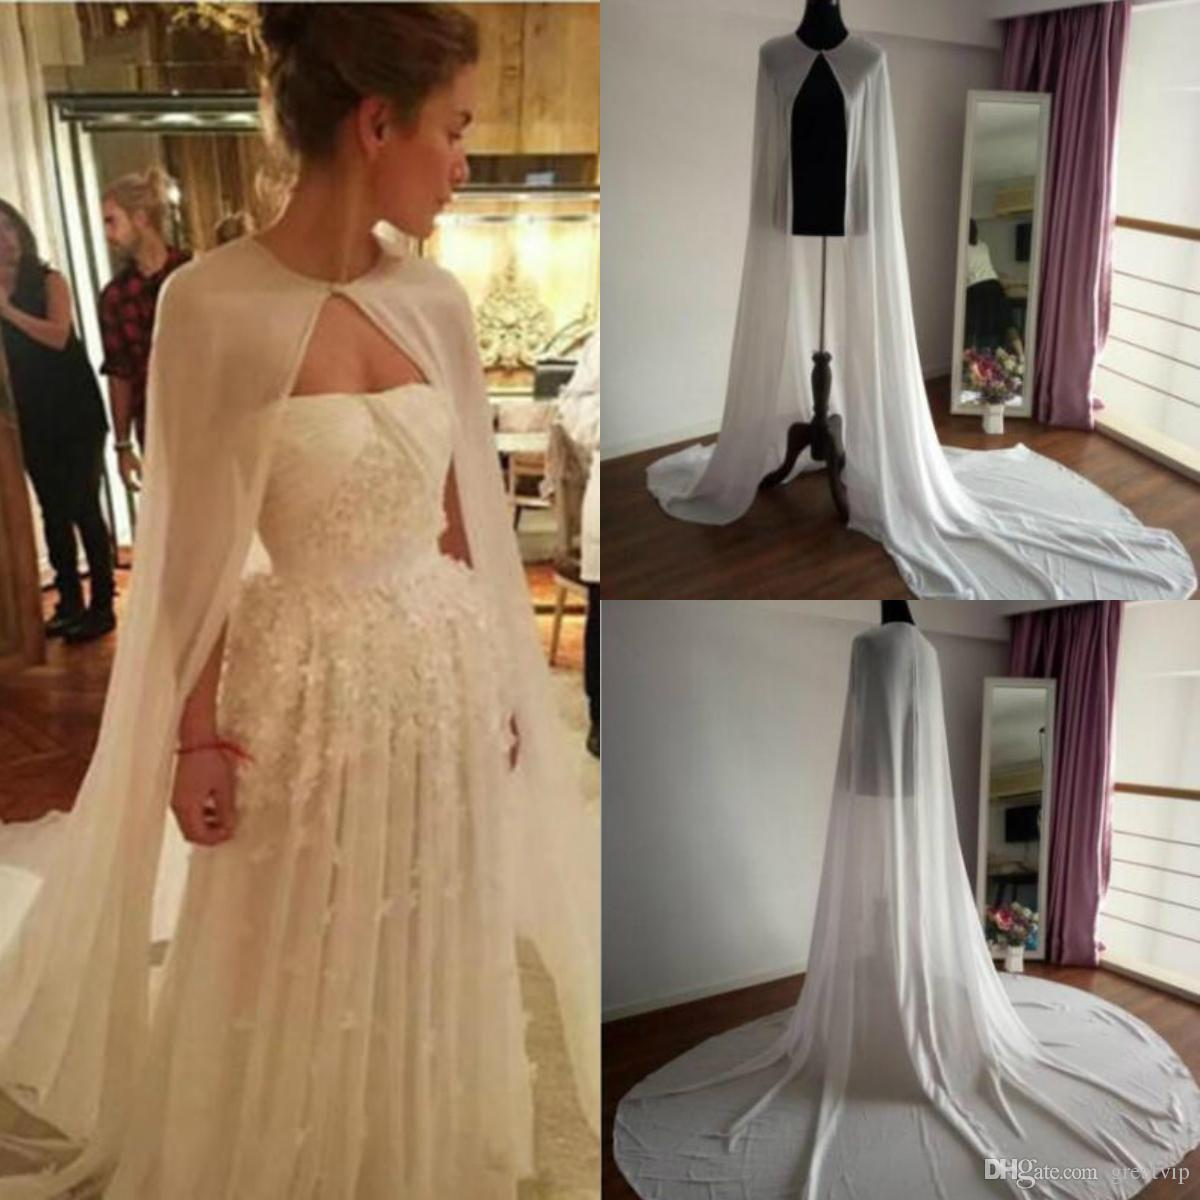 4867124a061 2019 Long Chiffon Wedding Capes Jackets Boleros White Ivory Women Bridal  Accessories Brides Cloaks Mantles Bridal Wraps Shawls From Greatvip